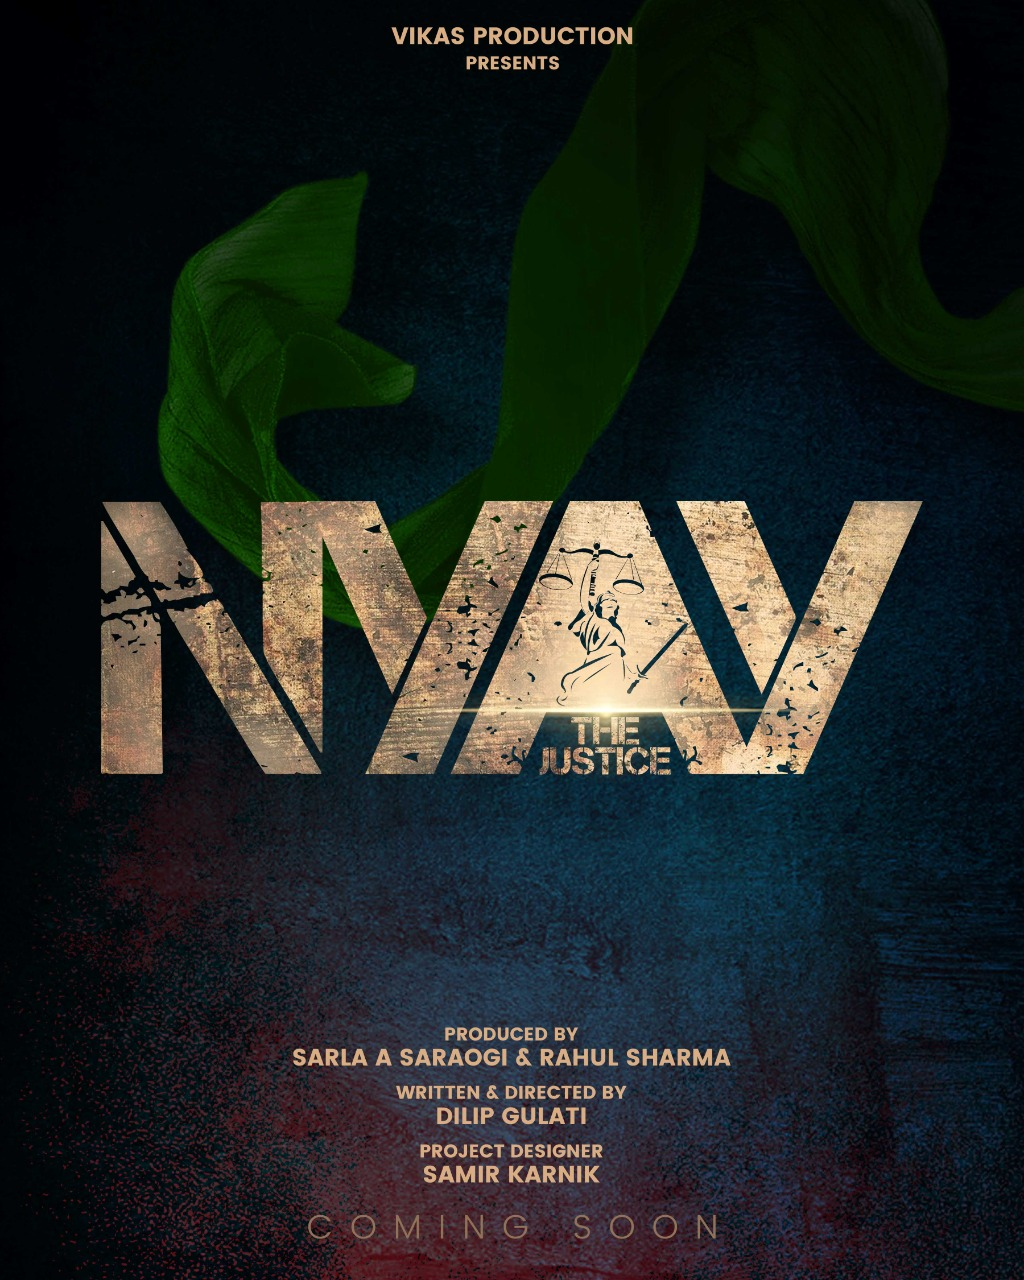 Justice for Sushant Singh Rajput in 'Nyay The Justice' movie